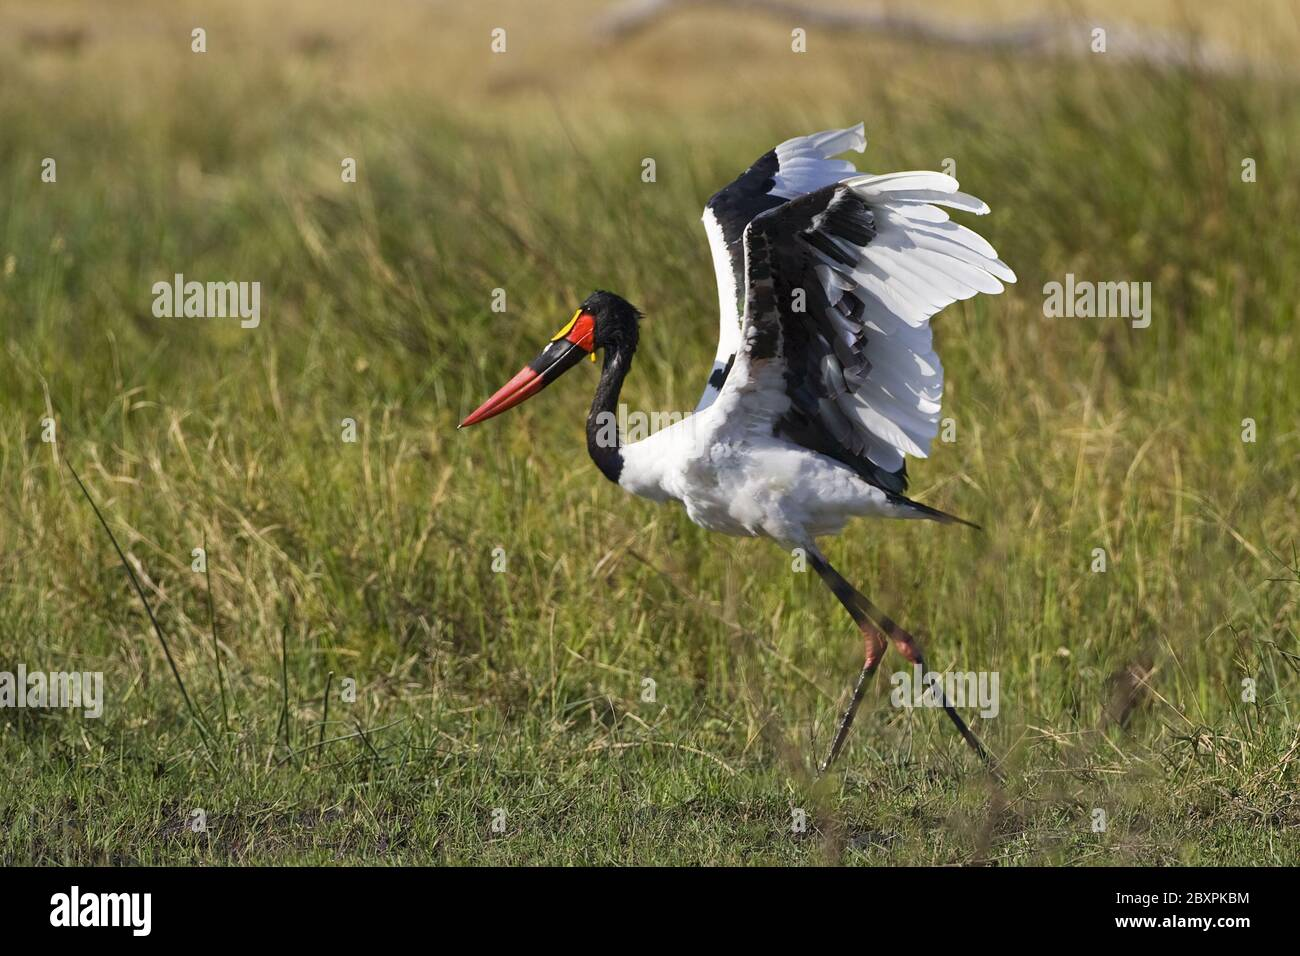 Saddle-billed Stork, (Ephippiorhynchus senegalensis), Africa Stock Photo